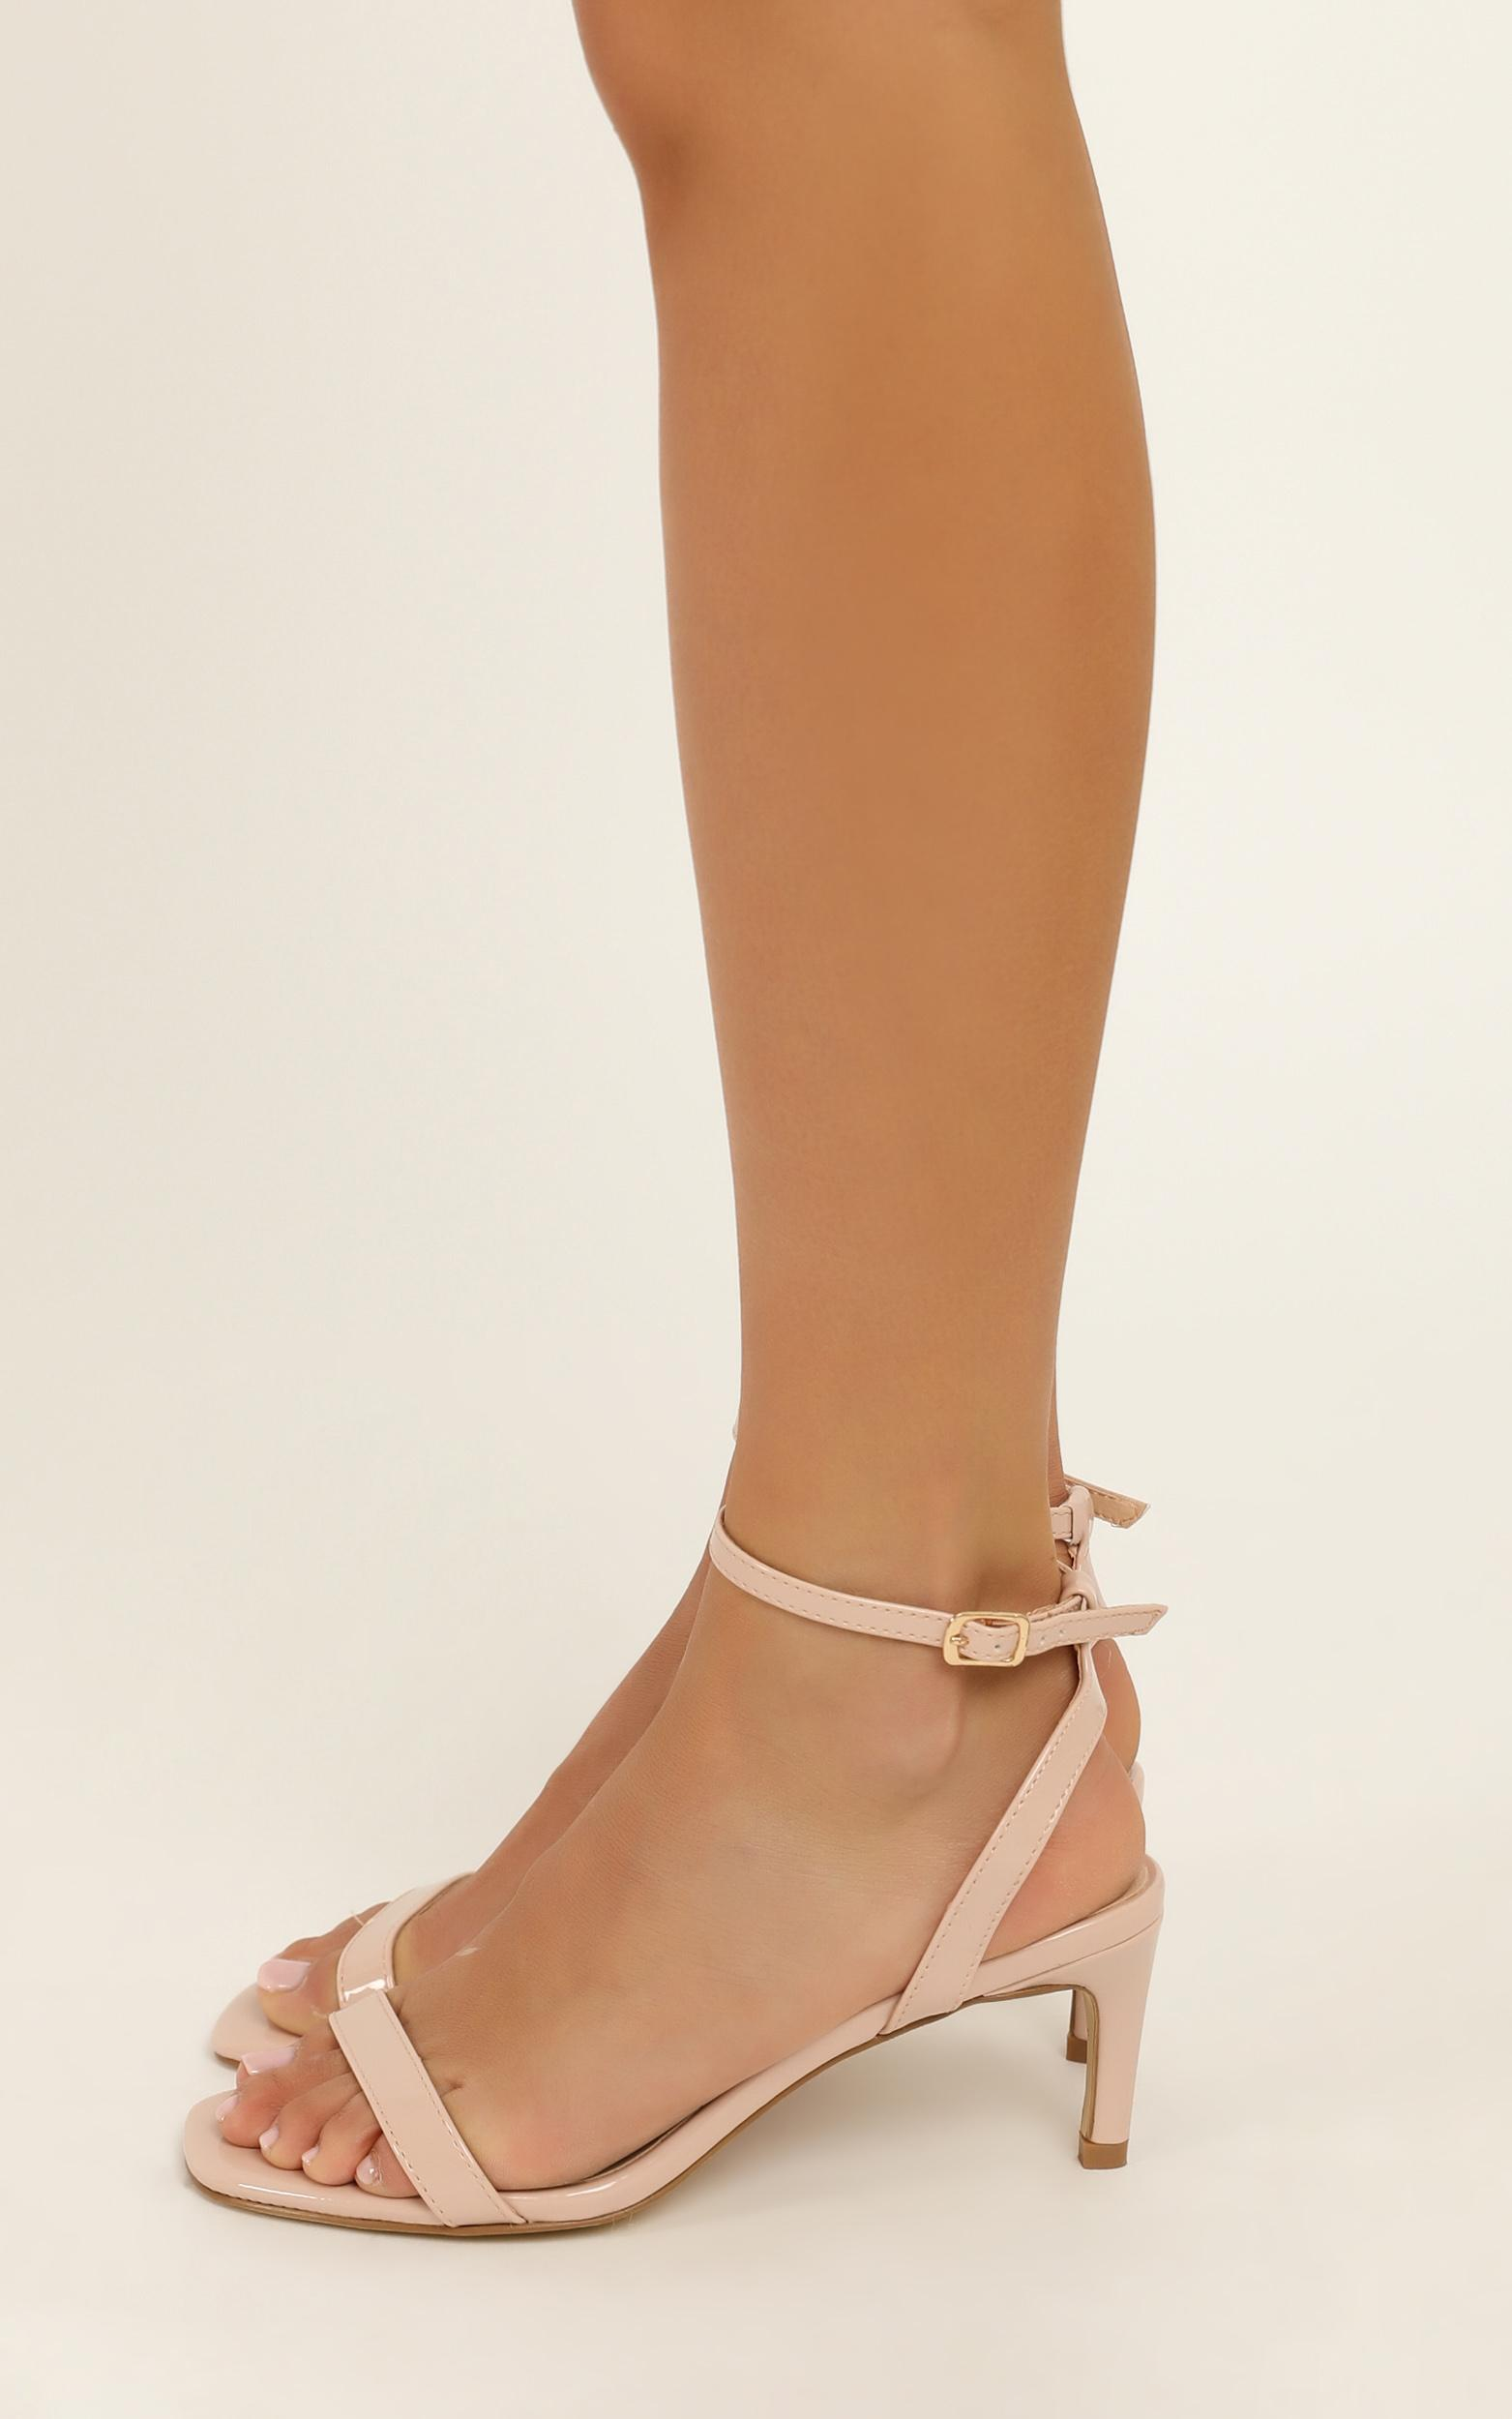 Verali - Valencia Heels in nude patent - 10, Beige, hi-res image number null